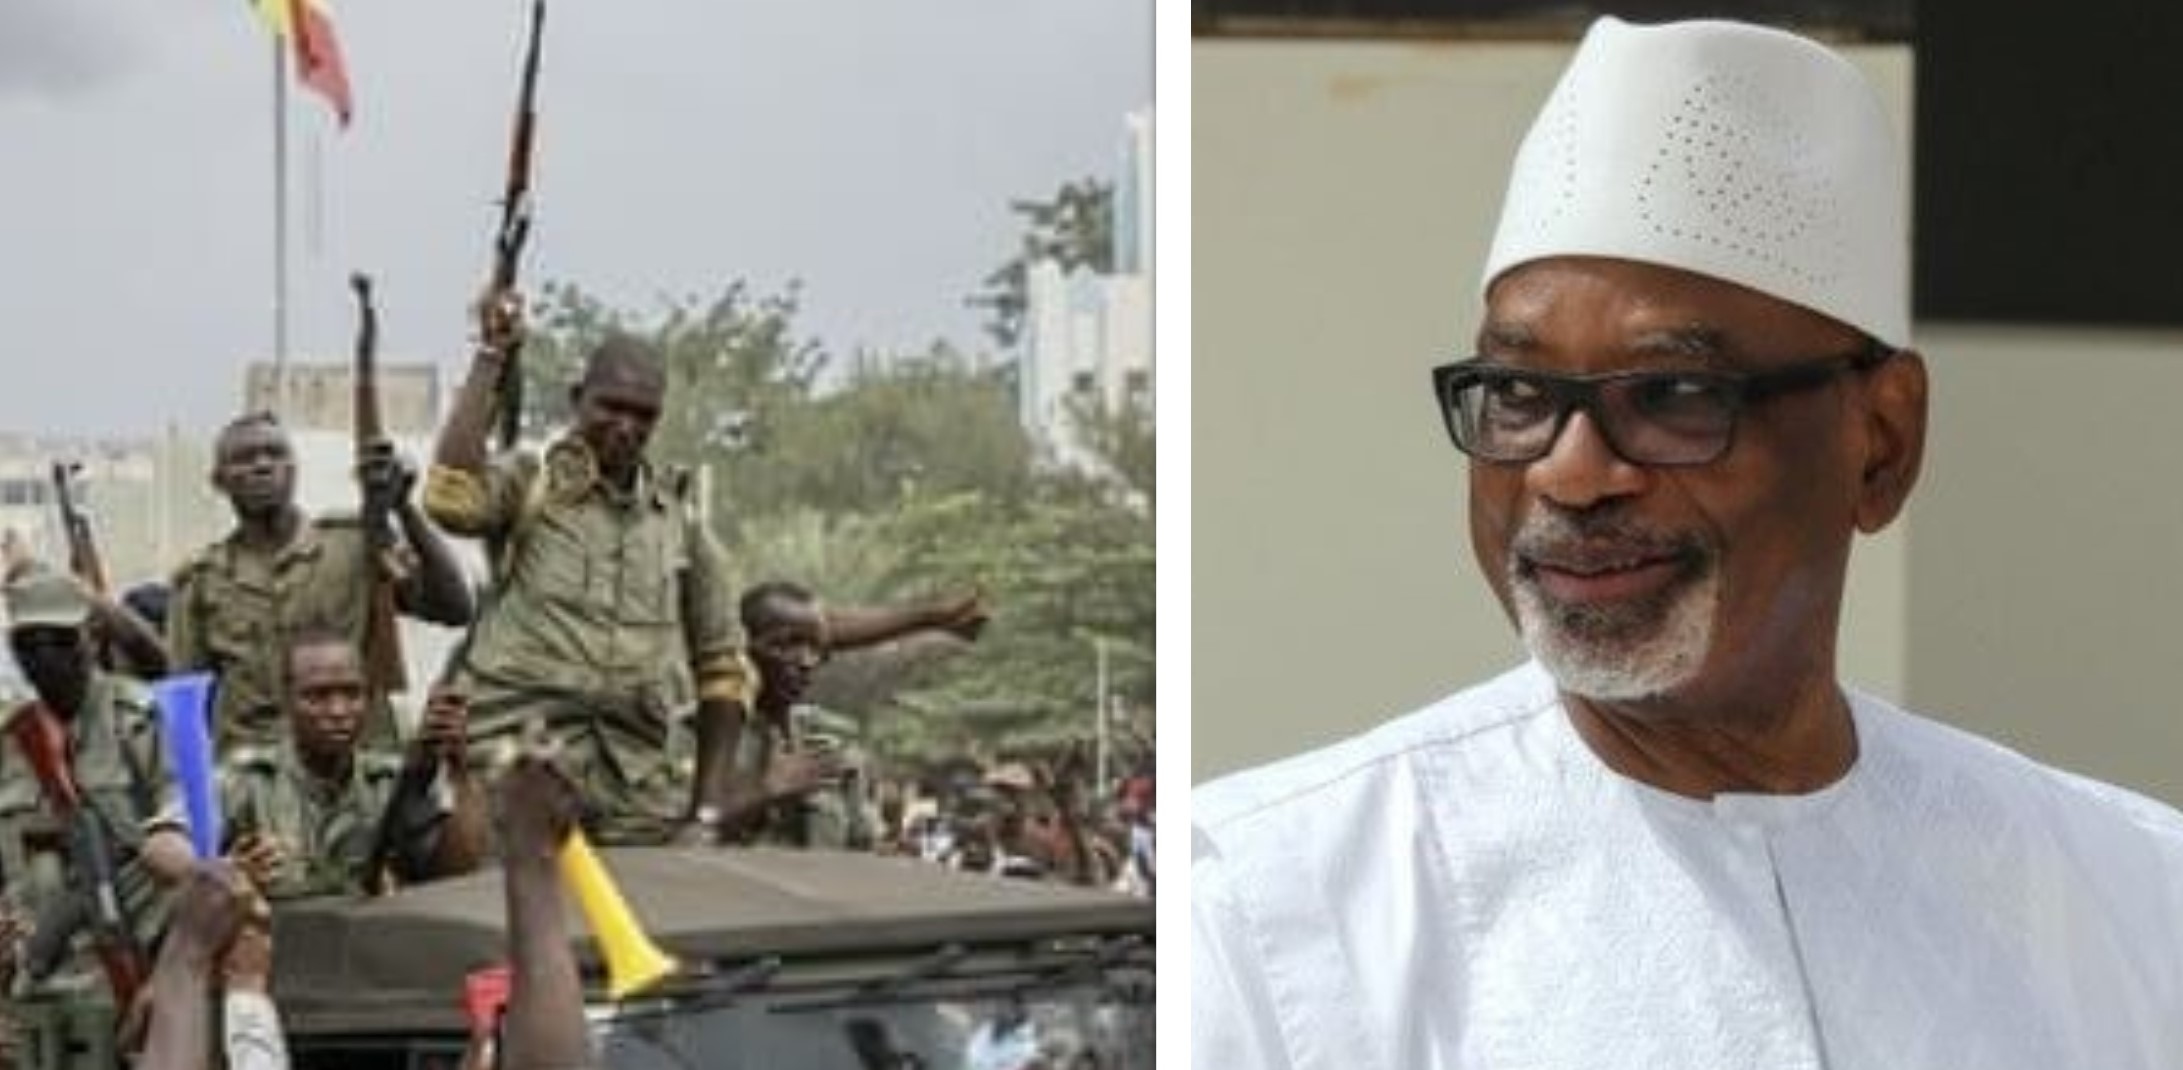 Mali coup: Military promises elections after ousting president